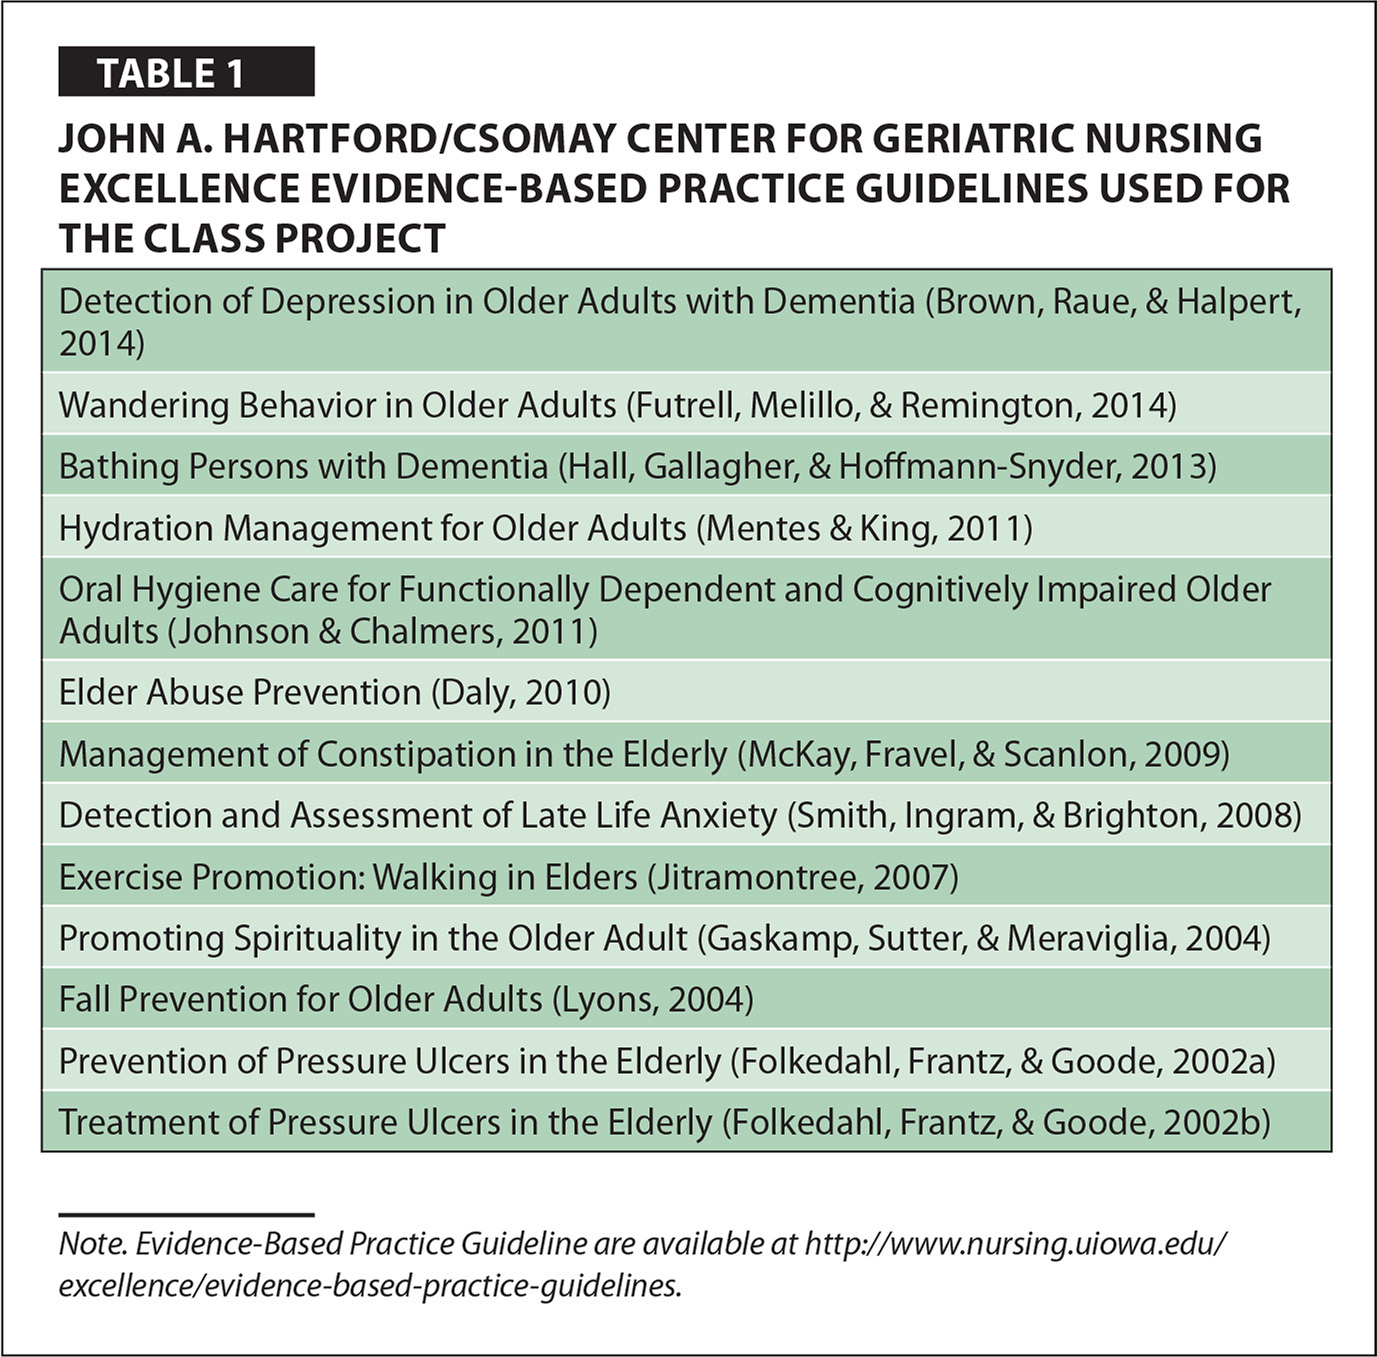 John A. Hartford/Csomay Center for Geriatric Nursing Excellence Evidence-Based Practice Guidelines Used for the Class Project